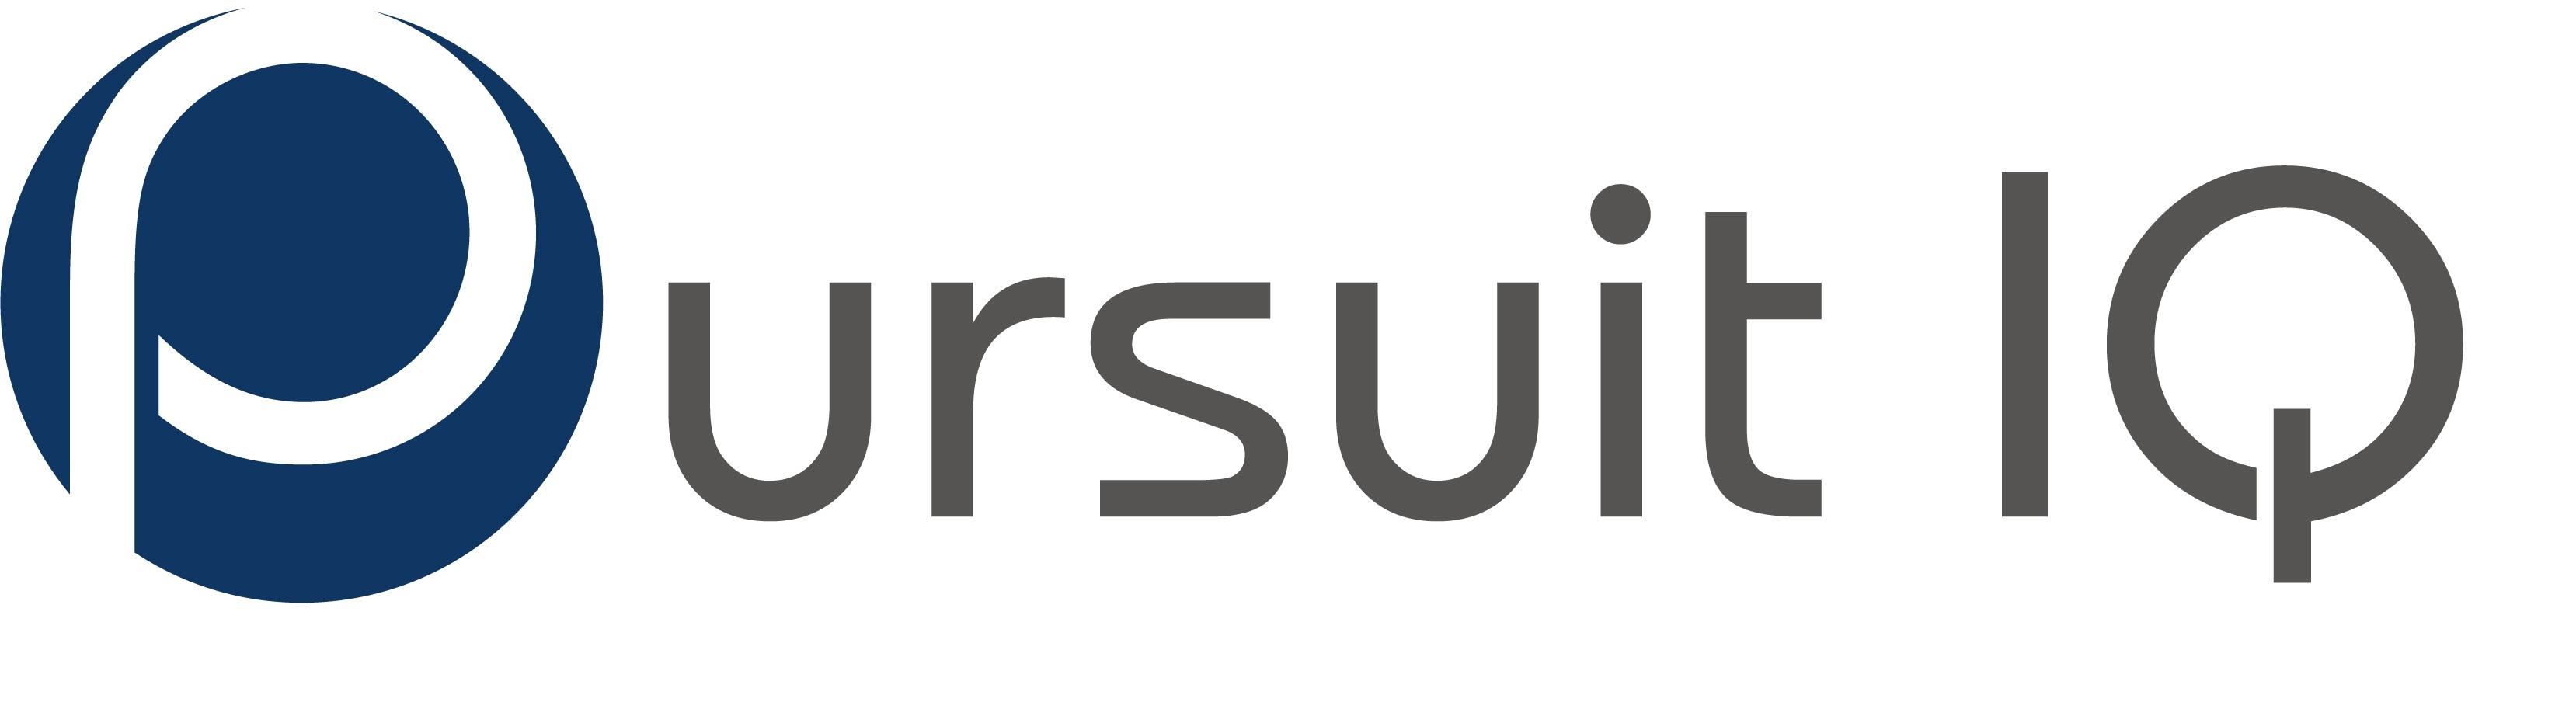 Pursuit IQ Announces Its New Office to Compliment a Growing Business Model